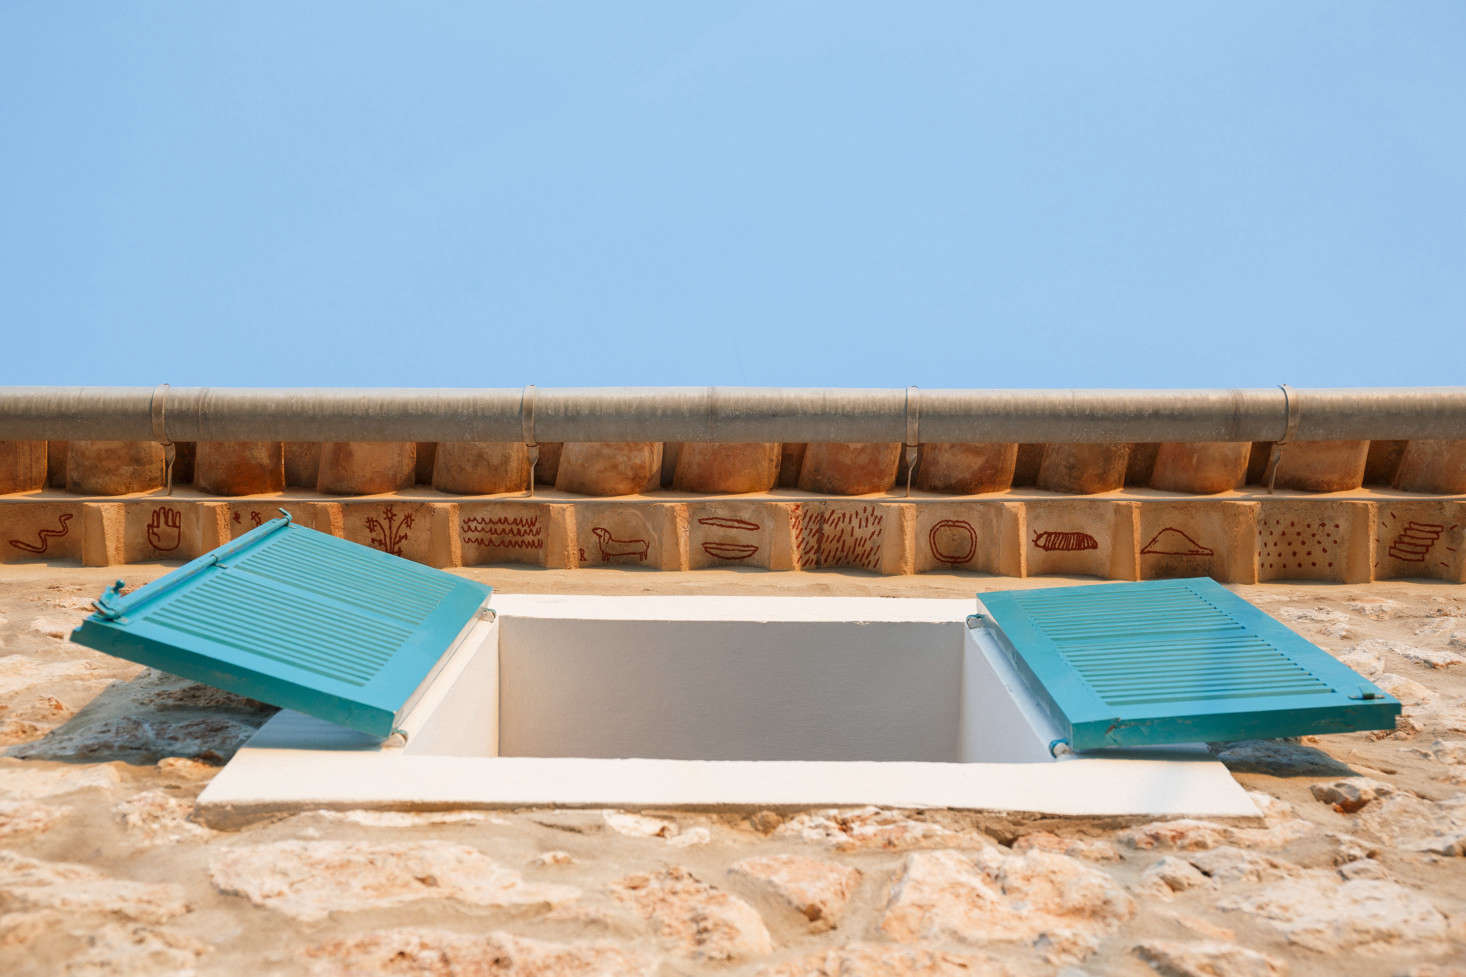 In another nod to Mallorcan tradition, the architects hired artist Luis Urculo to paint small rust-colored symbols beneath the roof tiles—a play on the medieval tradition of teules pintades,said to protect the inhabitants of the house. Of the bright shutters, the architects say, &#8